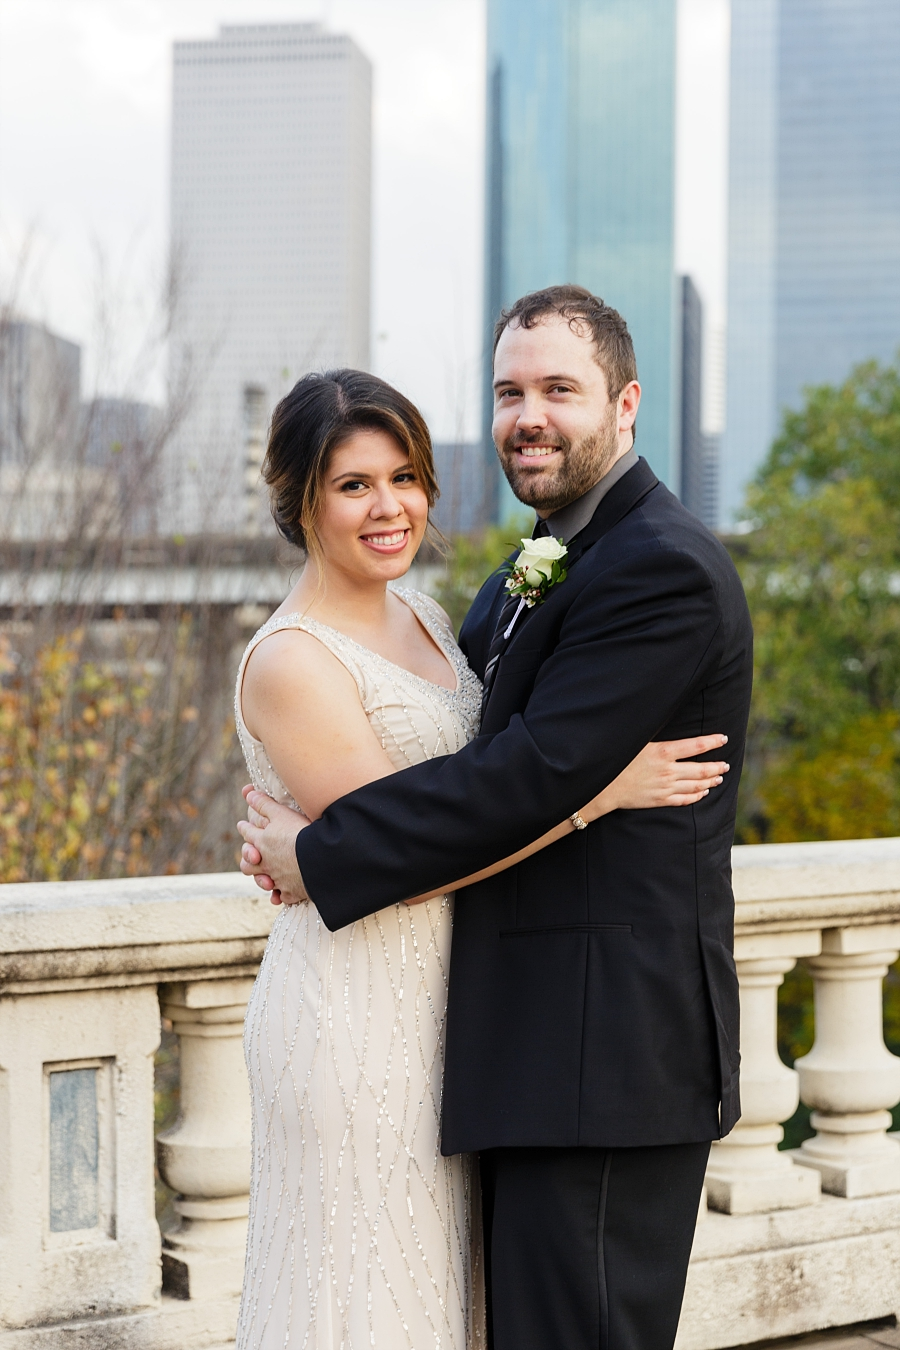 Stacy-Anderson-Photography-Houston-Courthouse-Vic-Anthony-Wedding-Photographer_0008.jpg